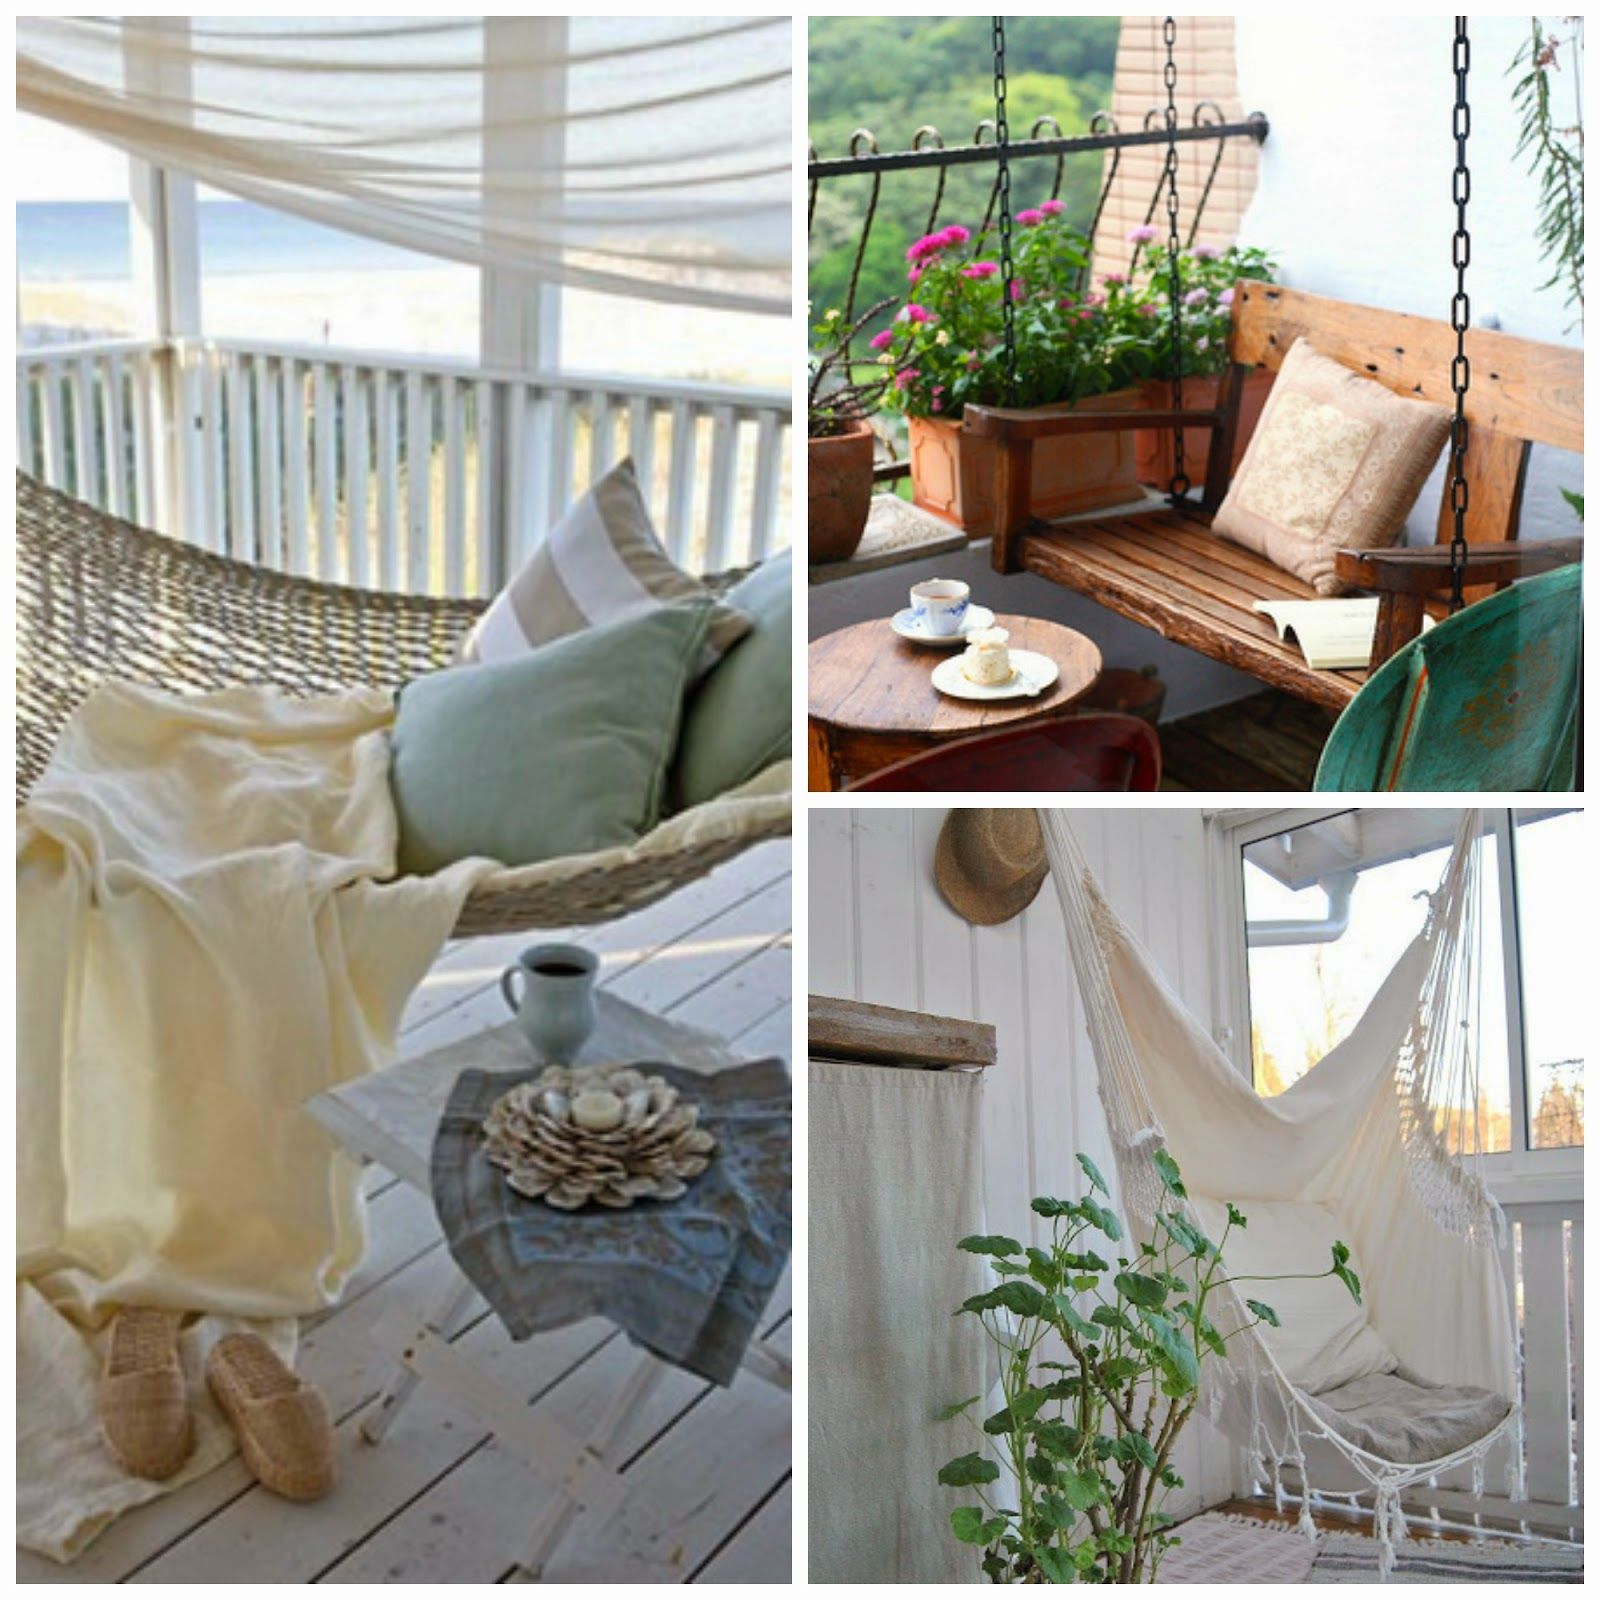 Balcony Hammocks & Chair Swings - Magnolia Styles 5 Steps